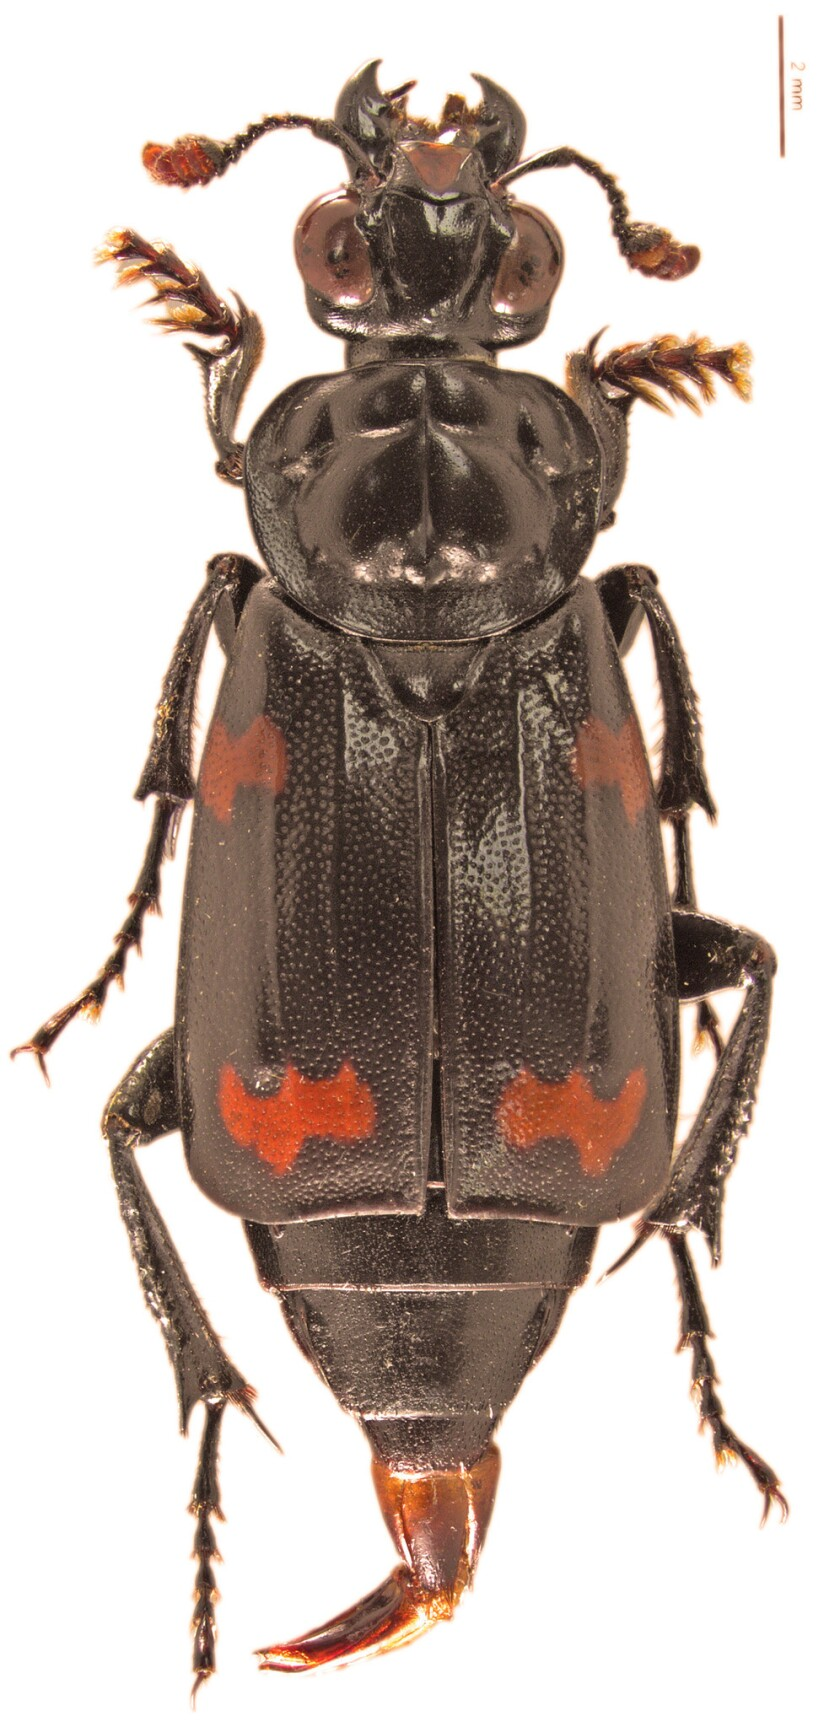 A new species of corpse-eating beetle, Nicrophorus efferens, was discovered from the Solomon Islands.